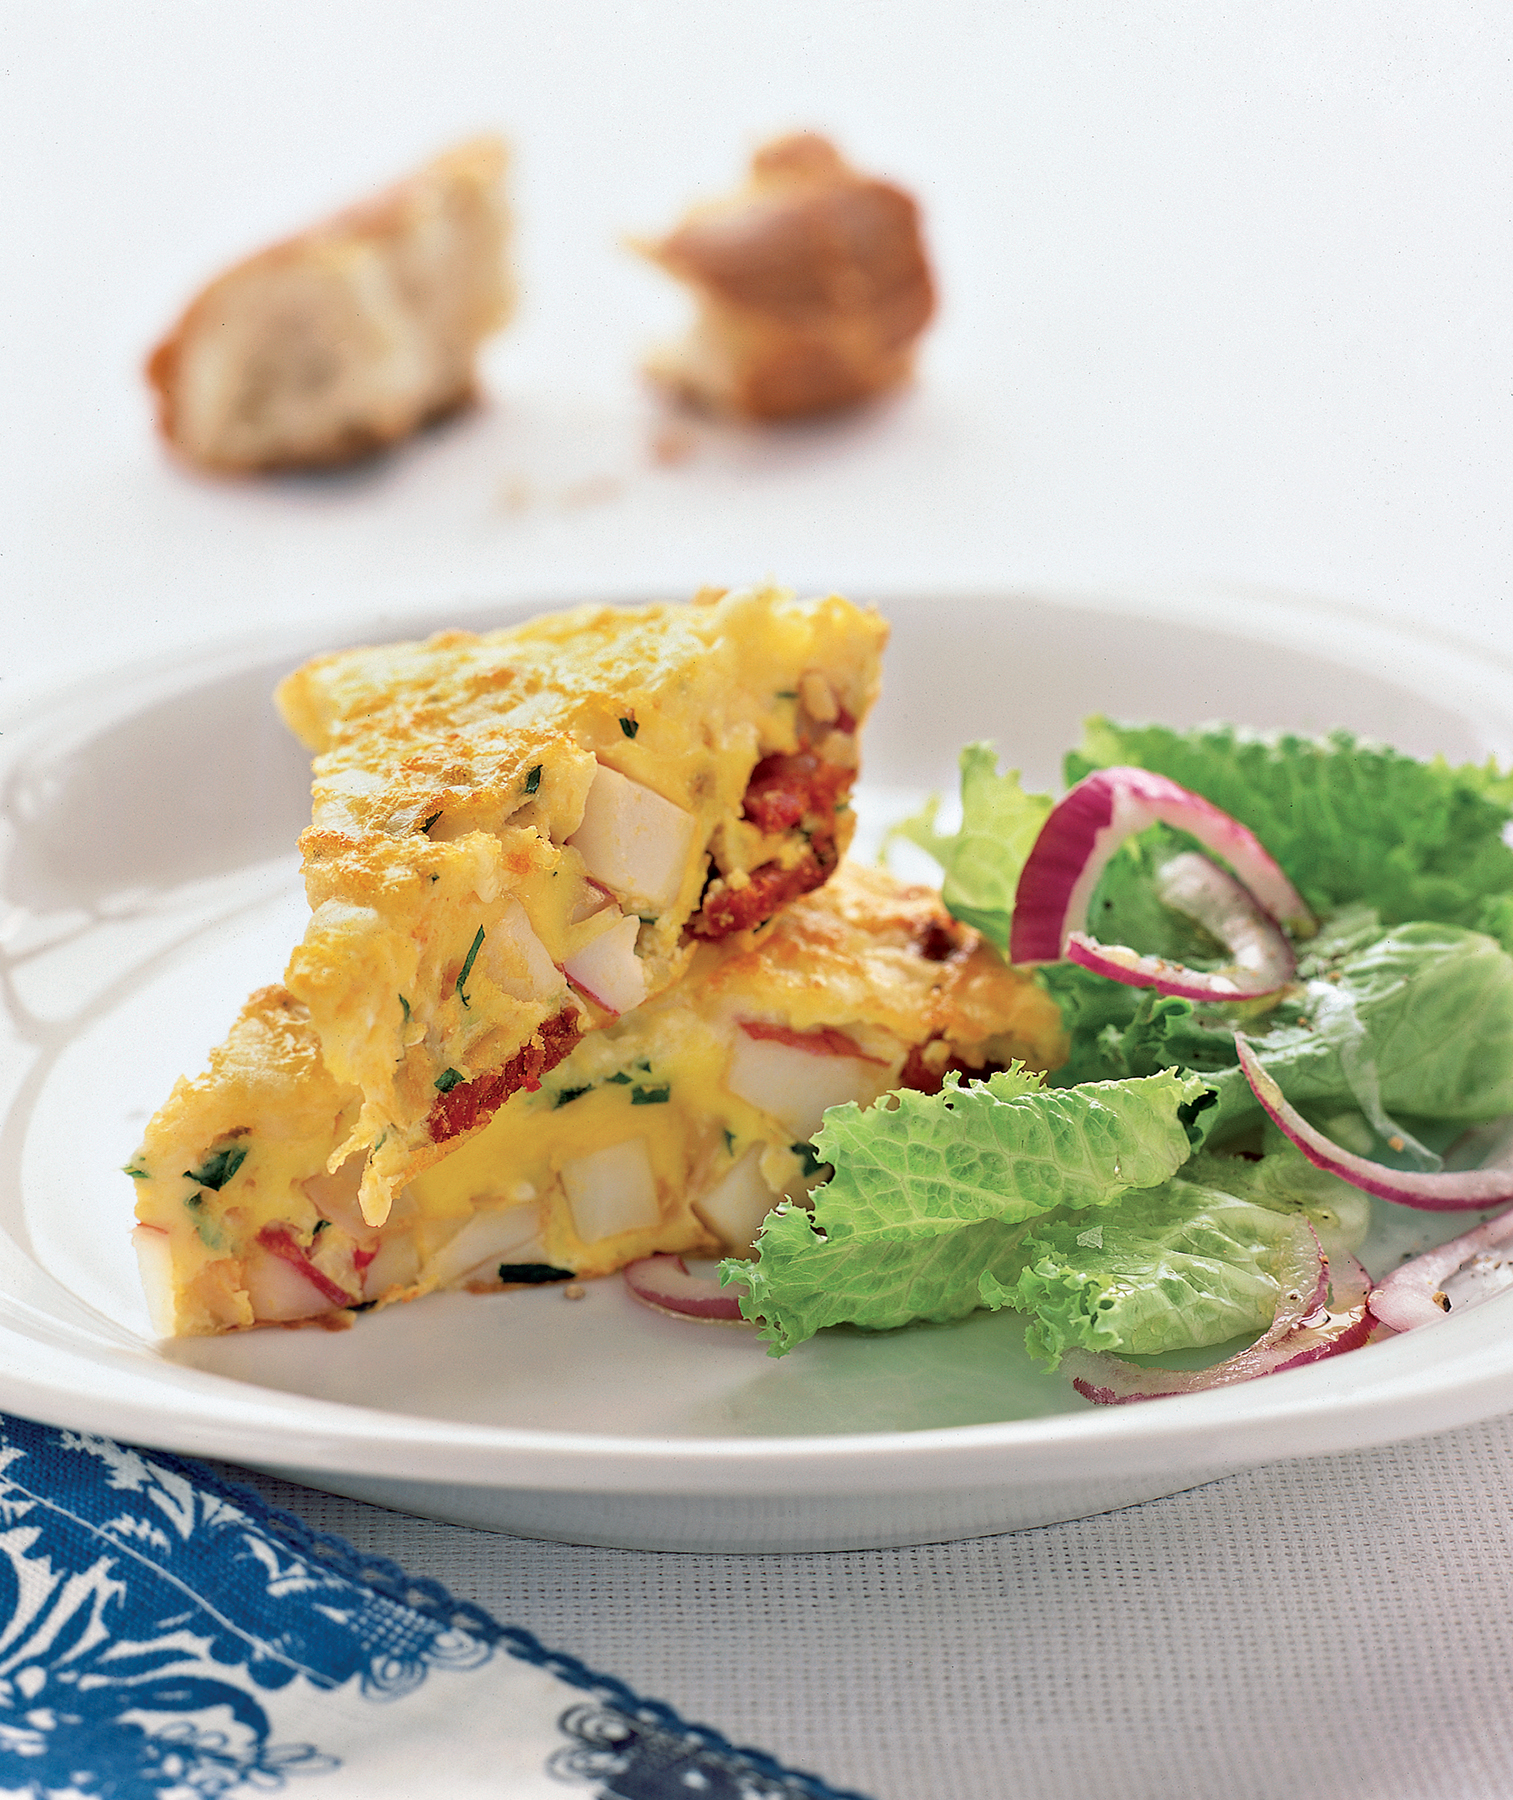 Quick Dinner Ideas: Spanish Omelet With Potatoes and Chorizo